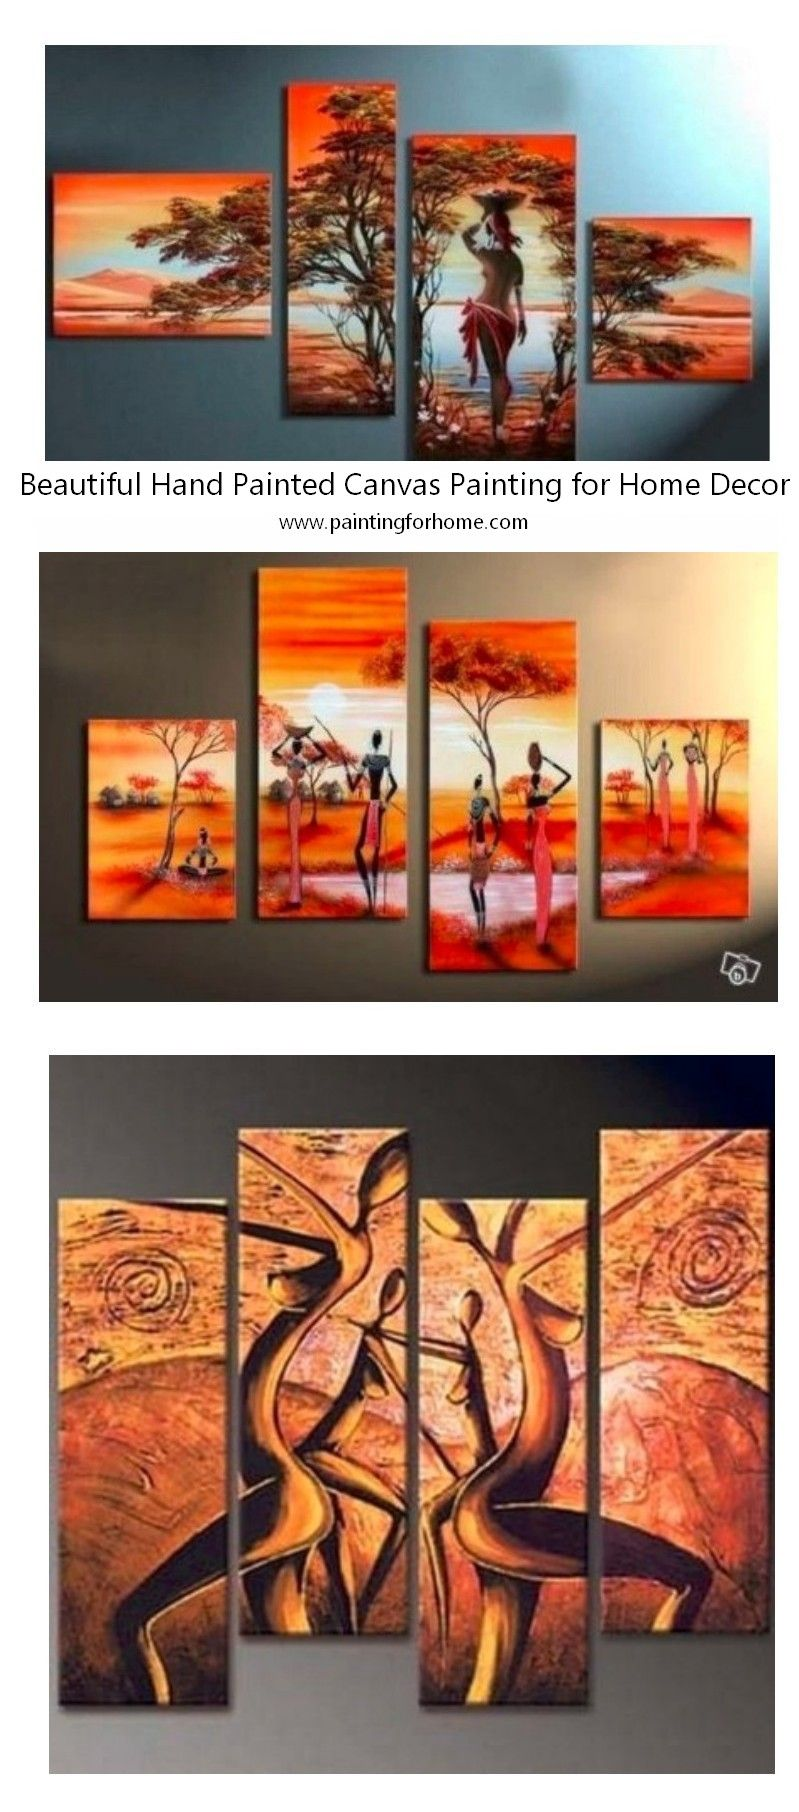 Beautiful African Landscape Paintings African Woman Paintings Acrylic African Wall Paintings Large Canvas Painting Canvas Paintings For Sale Abstract Wall Art Painting